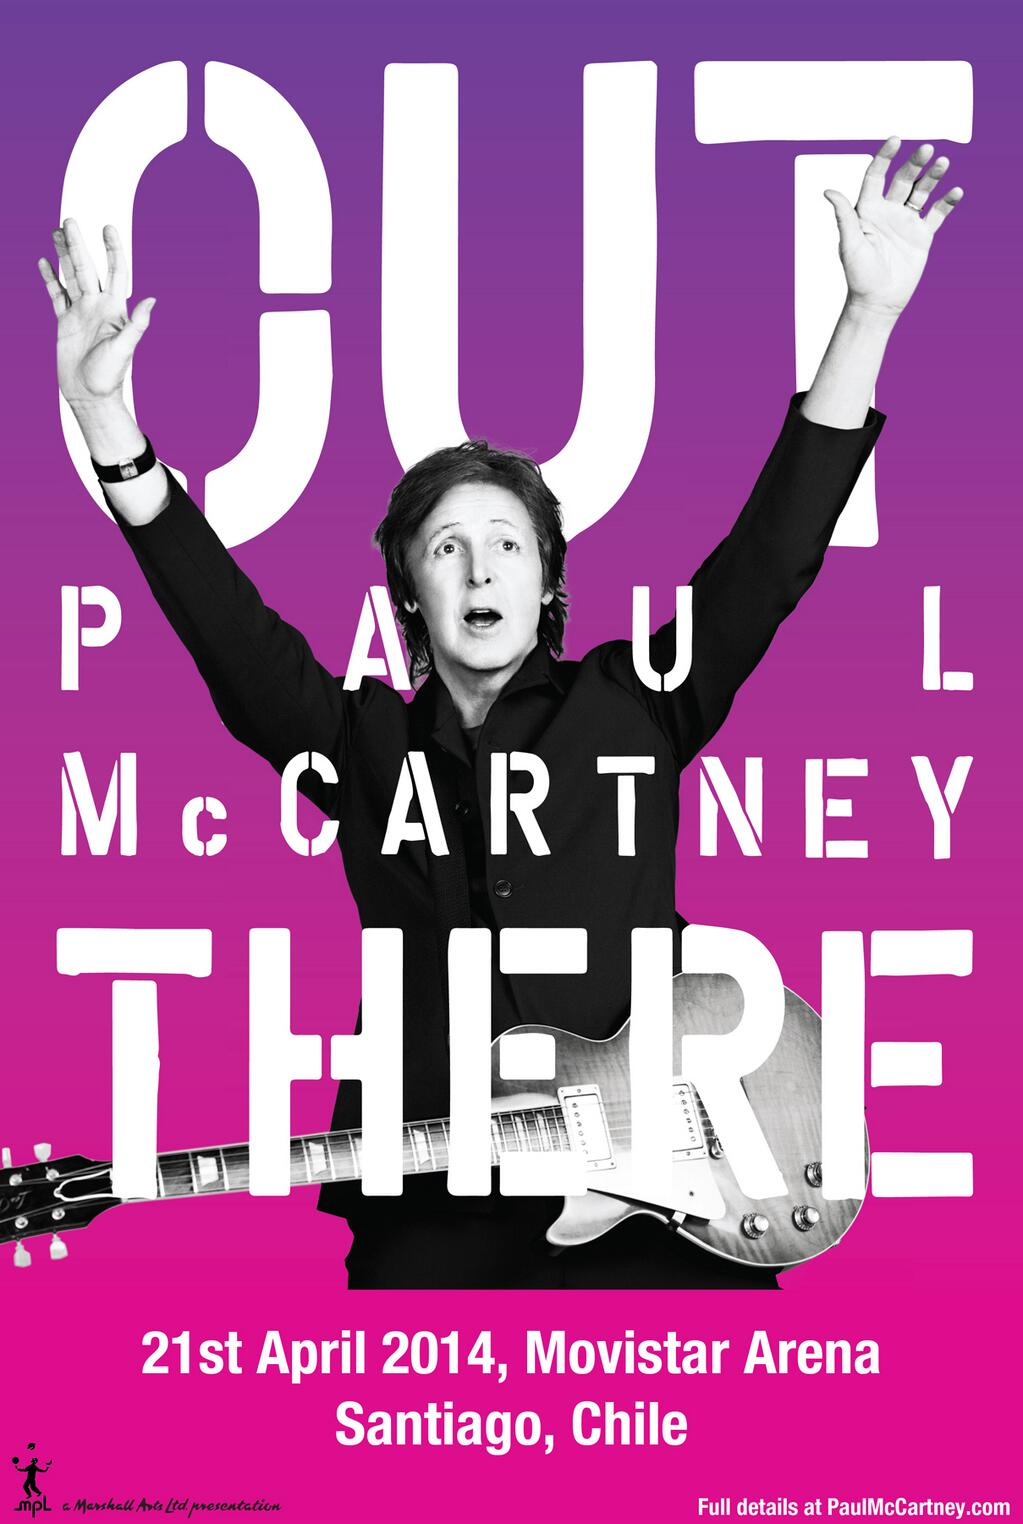 Paul will be getting back #OutThere on April 21st at the Movistar Arena in Santiago! Details: http://t.co/85tljehWf8 http://t.co/vbDwunWtkp